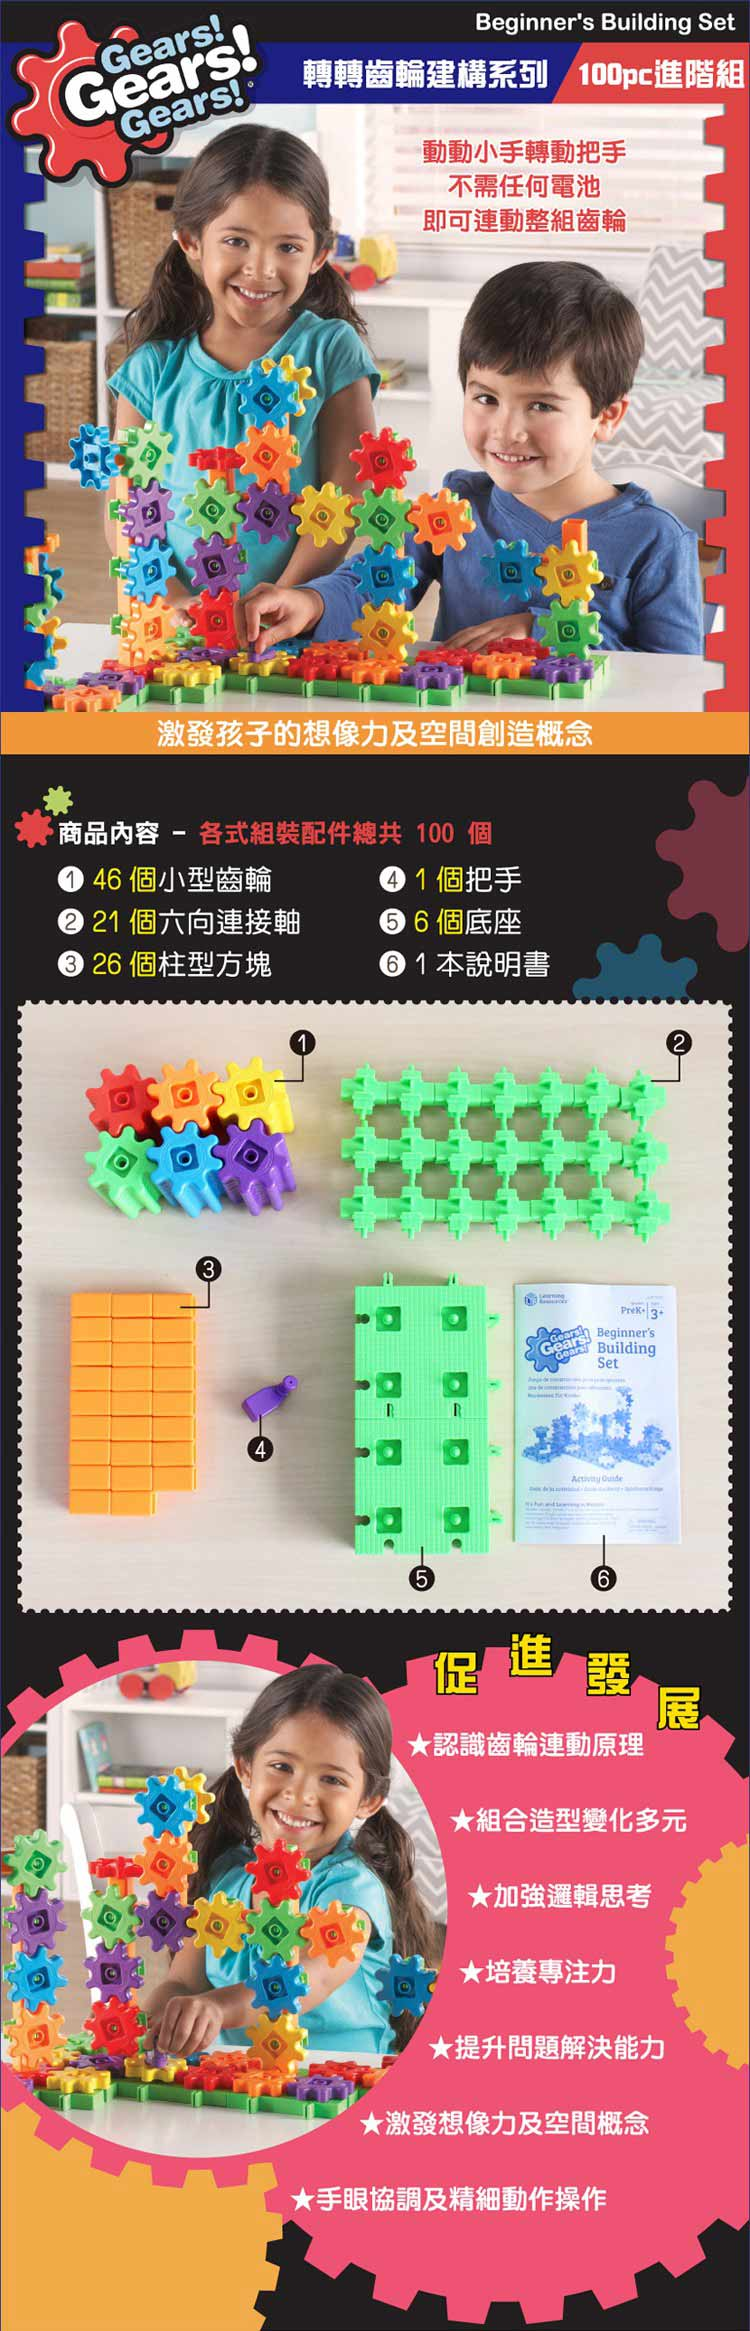 learning resources 玩具 手眼協調 玩具 創意 玩具